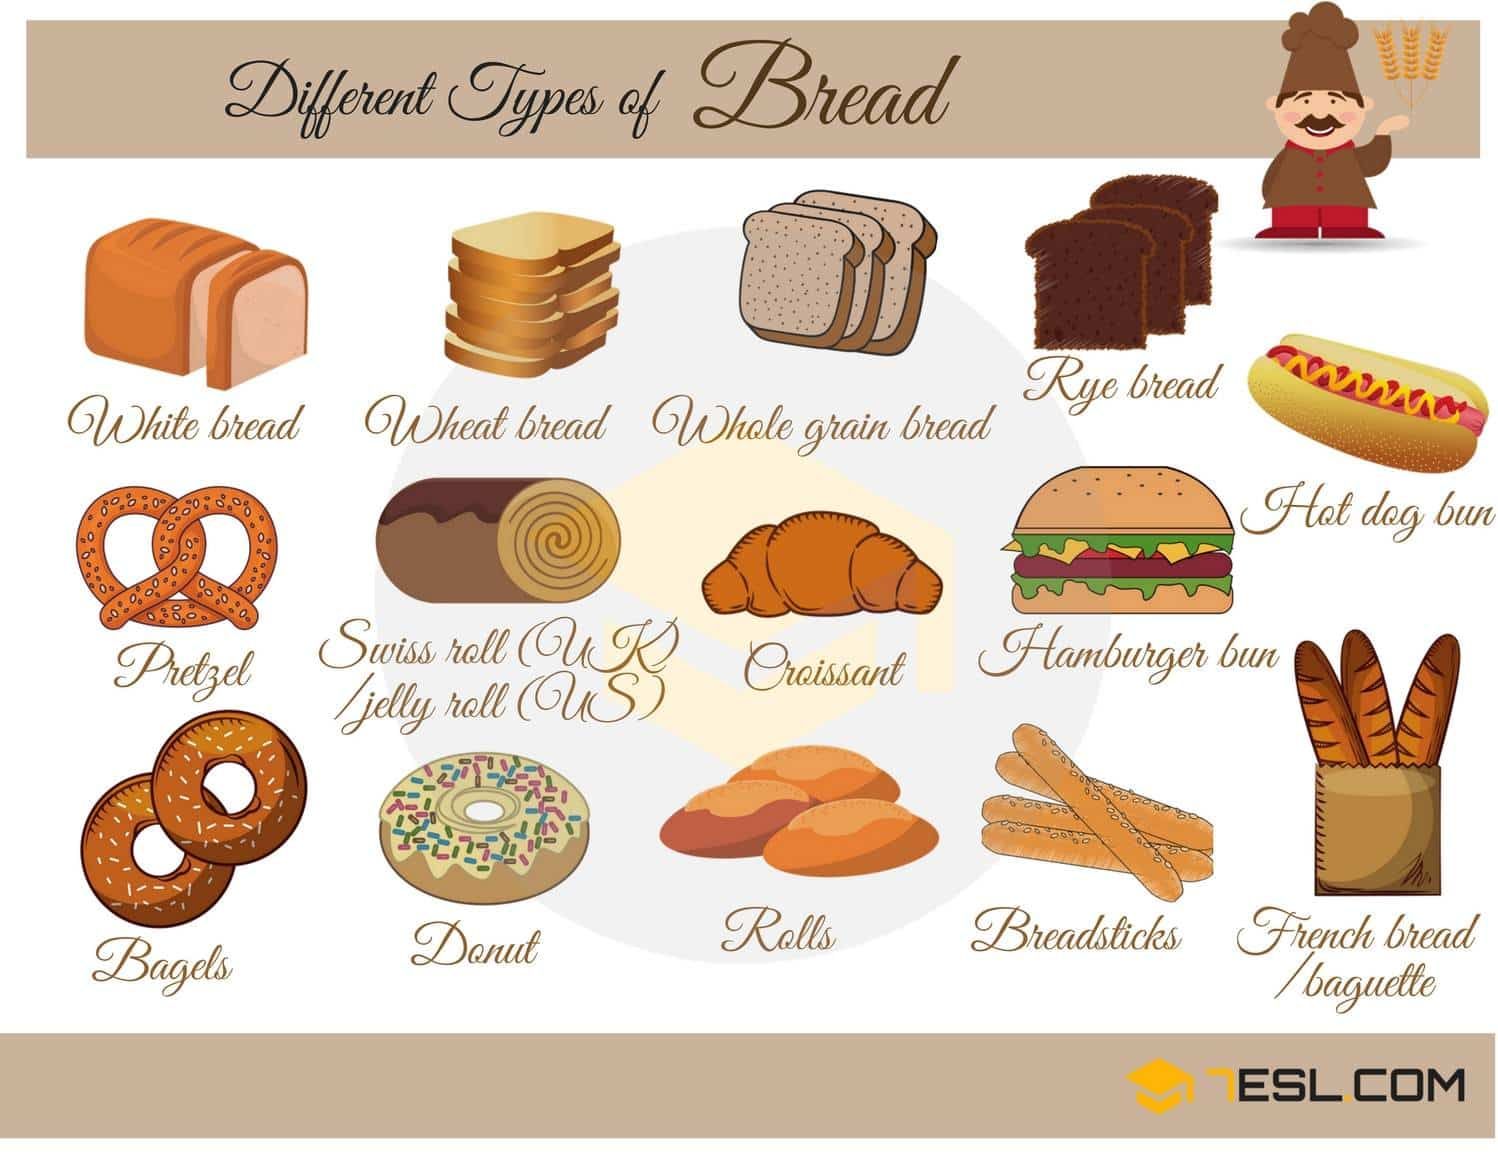 Different Types of Bread in English